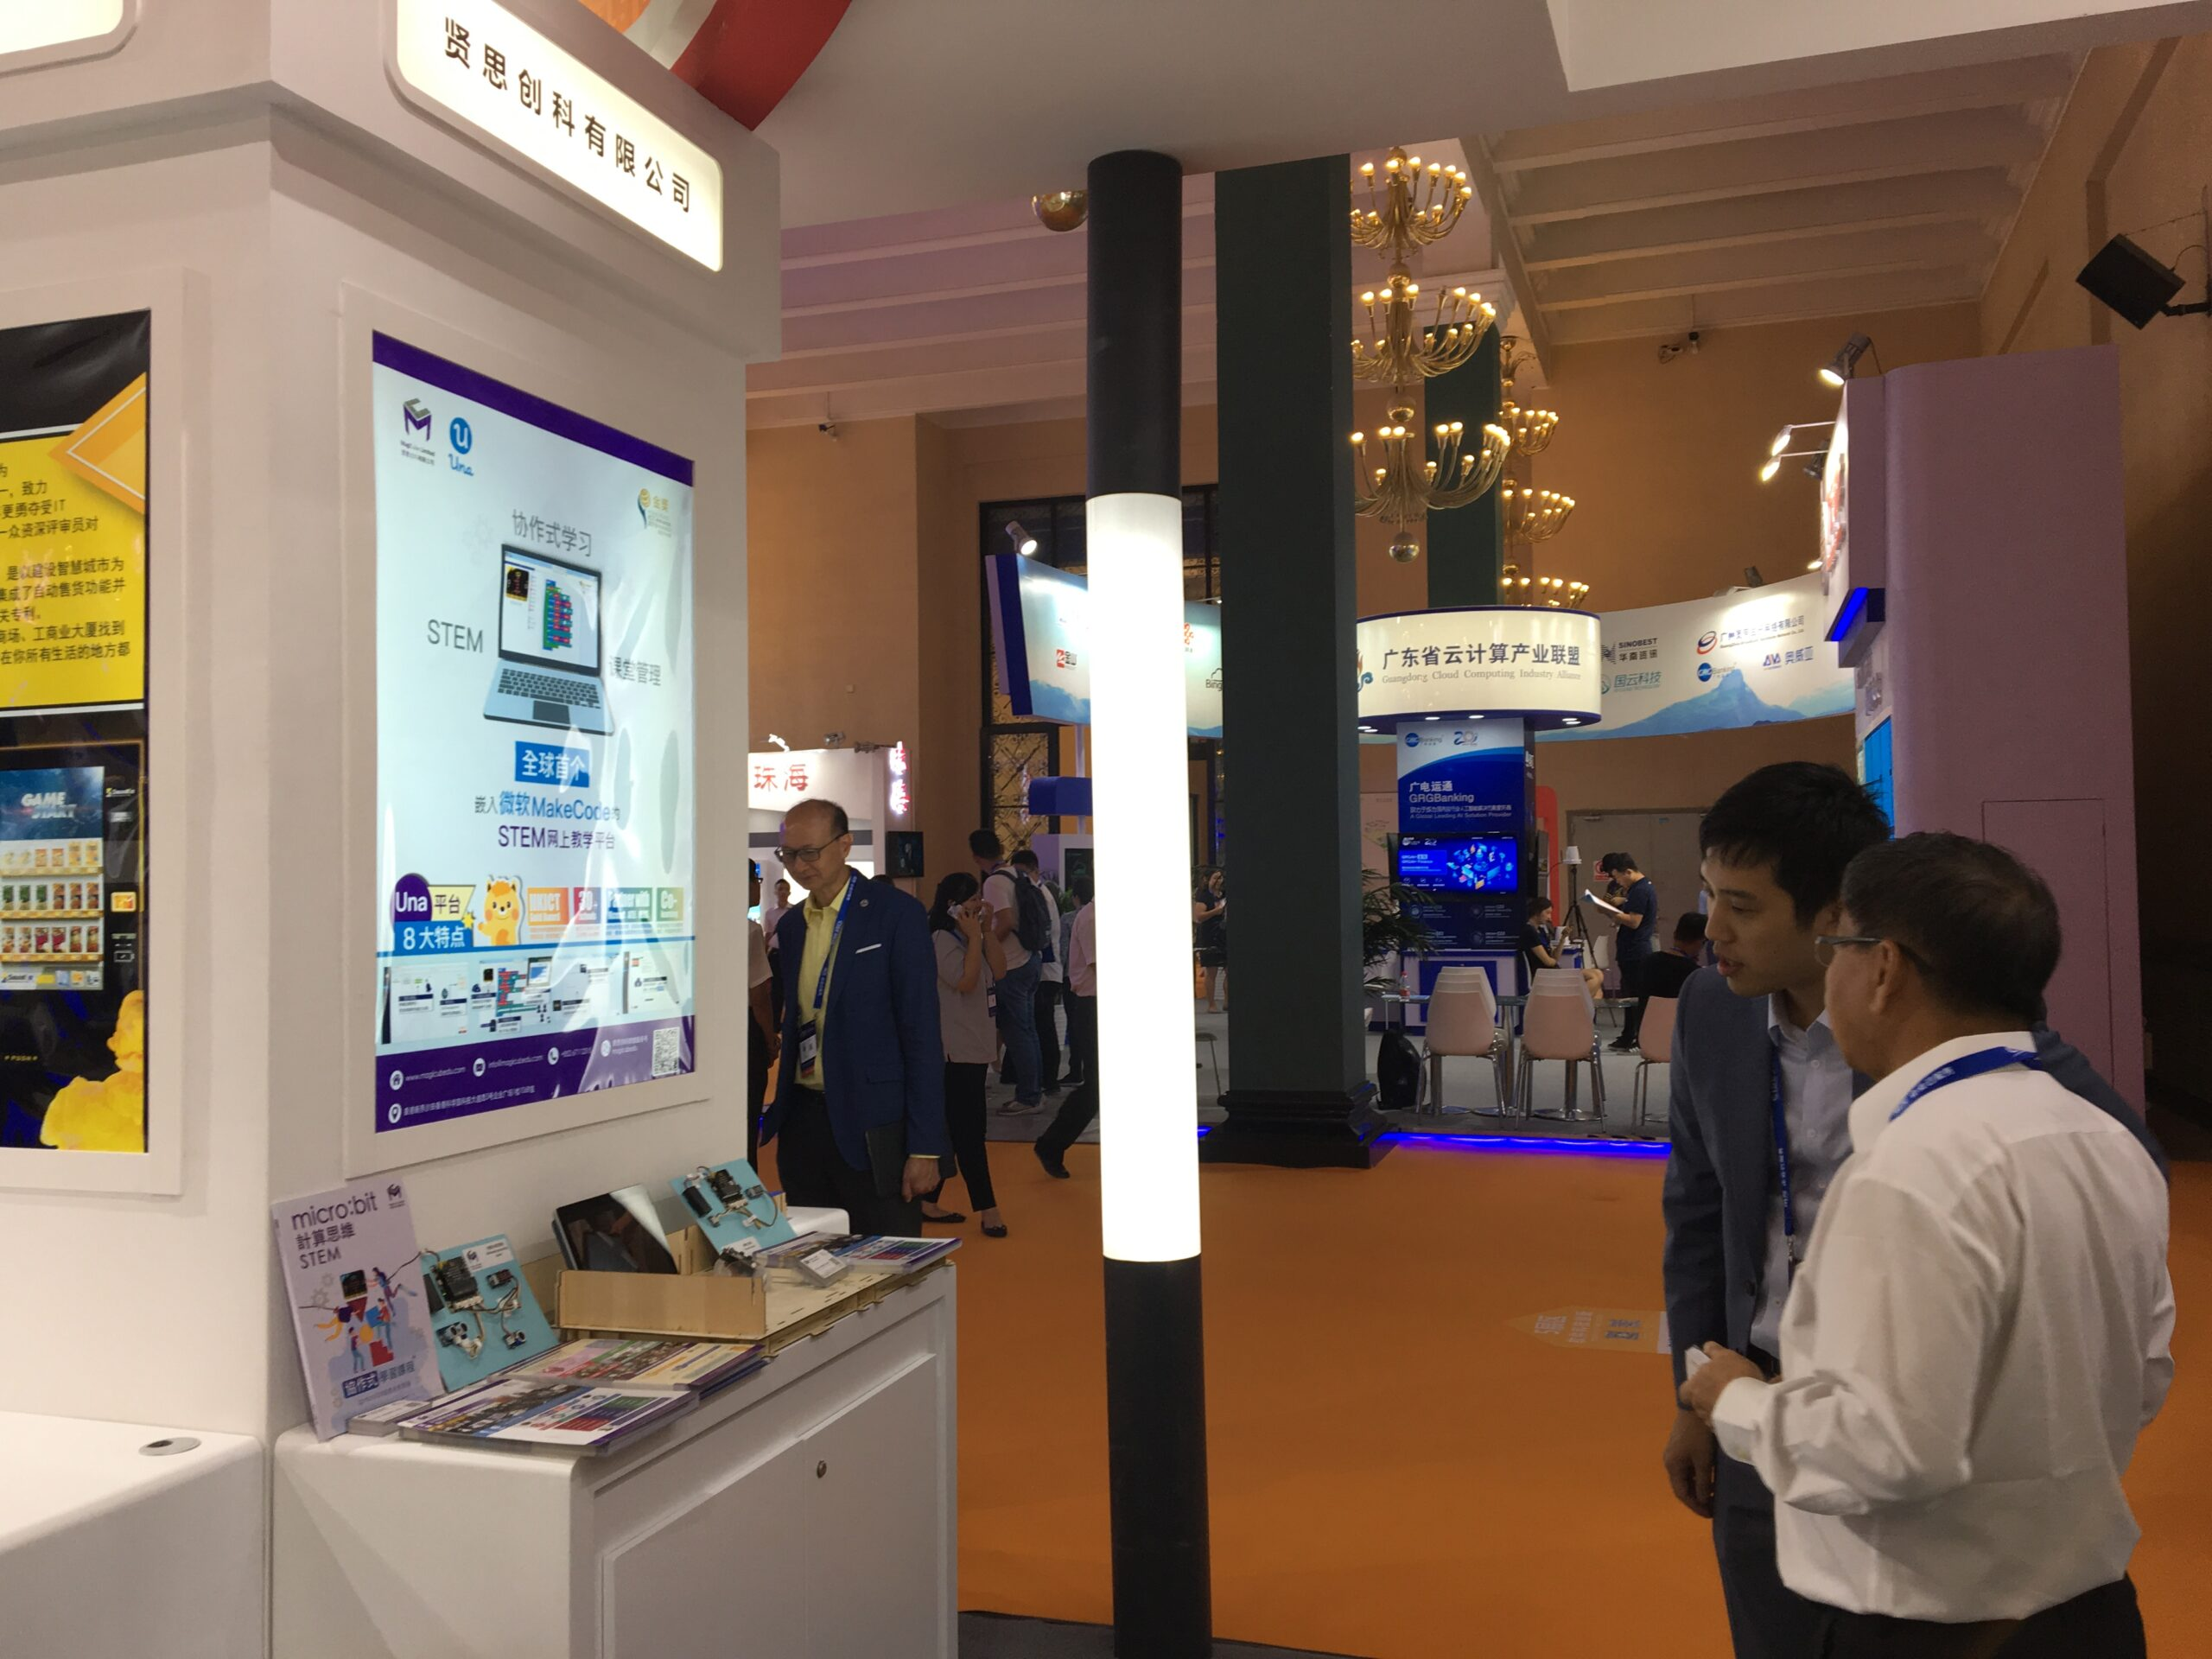 The 23rd China International Software Expo 3